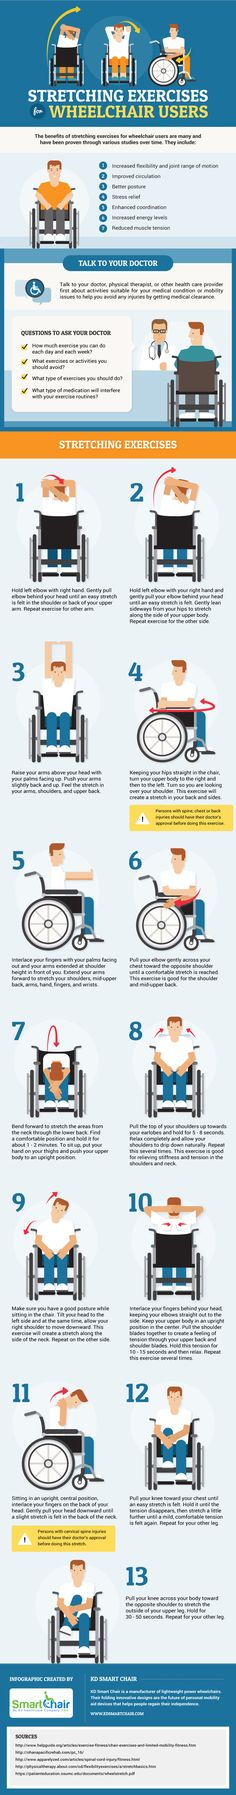 Stretching Exercises for Wheelchair Users [Infographic] – KD Smart Chair.  >>> See it. Believe it. Do it. Watch thousands of spinal cord injury videos at SPINALpedia.com Wheelchairs, Chair Exercises, Stretching Exercises, Abdominal Exercises, Occupational Therapy, Physical Therapy, Workout Fitness, Workout Routines, Workouts